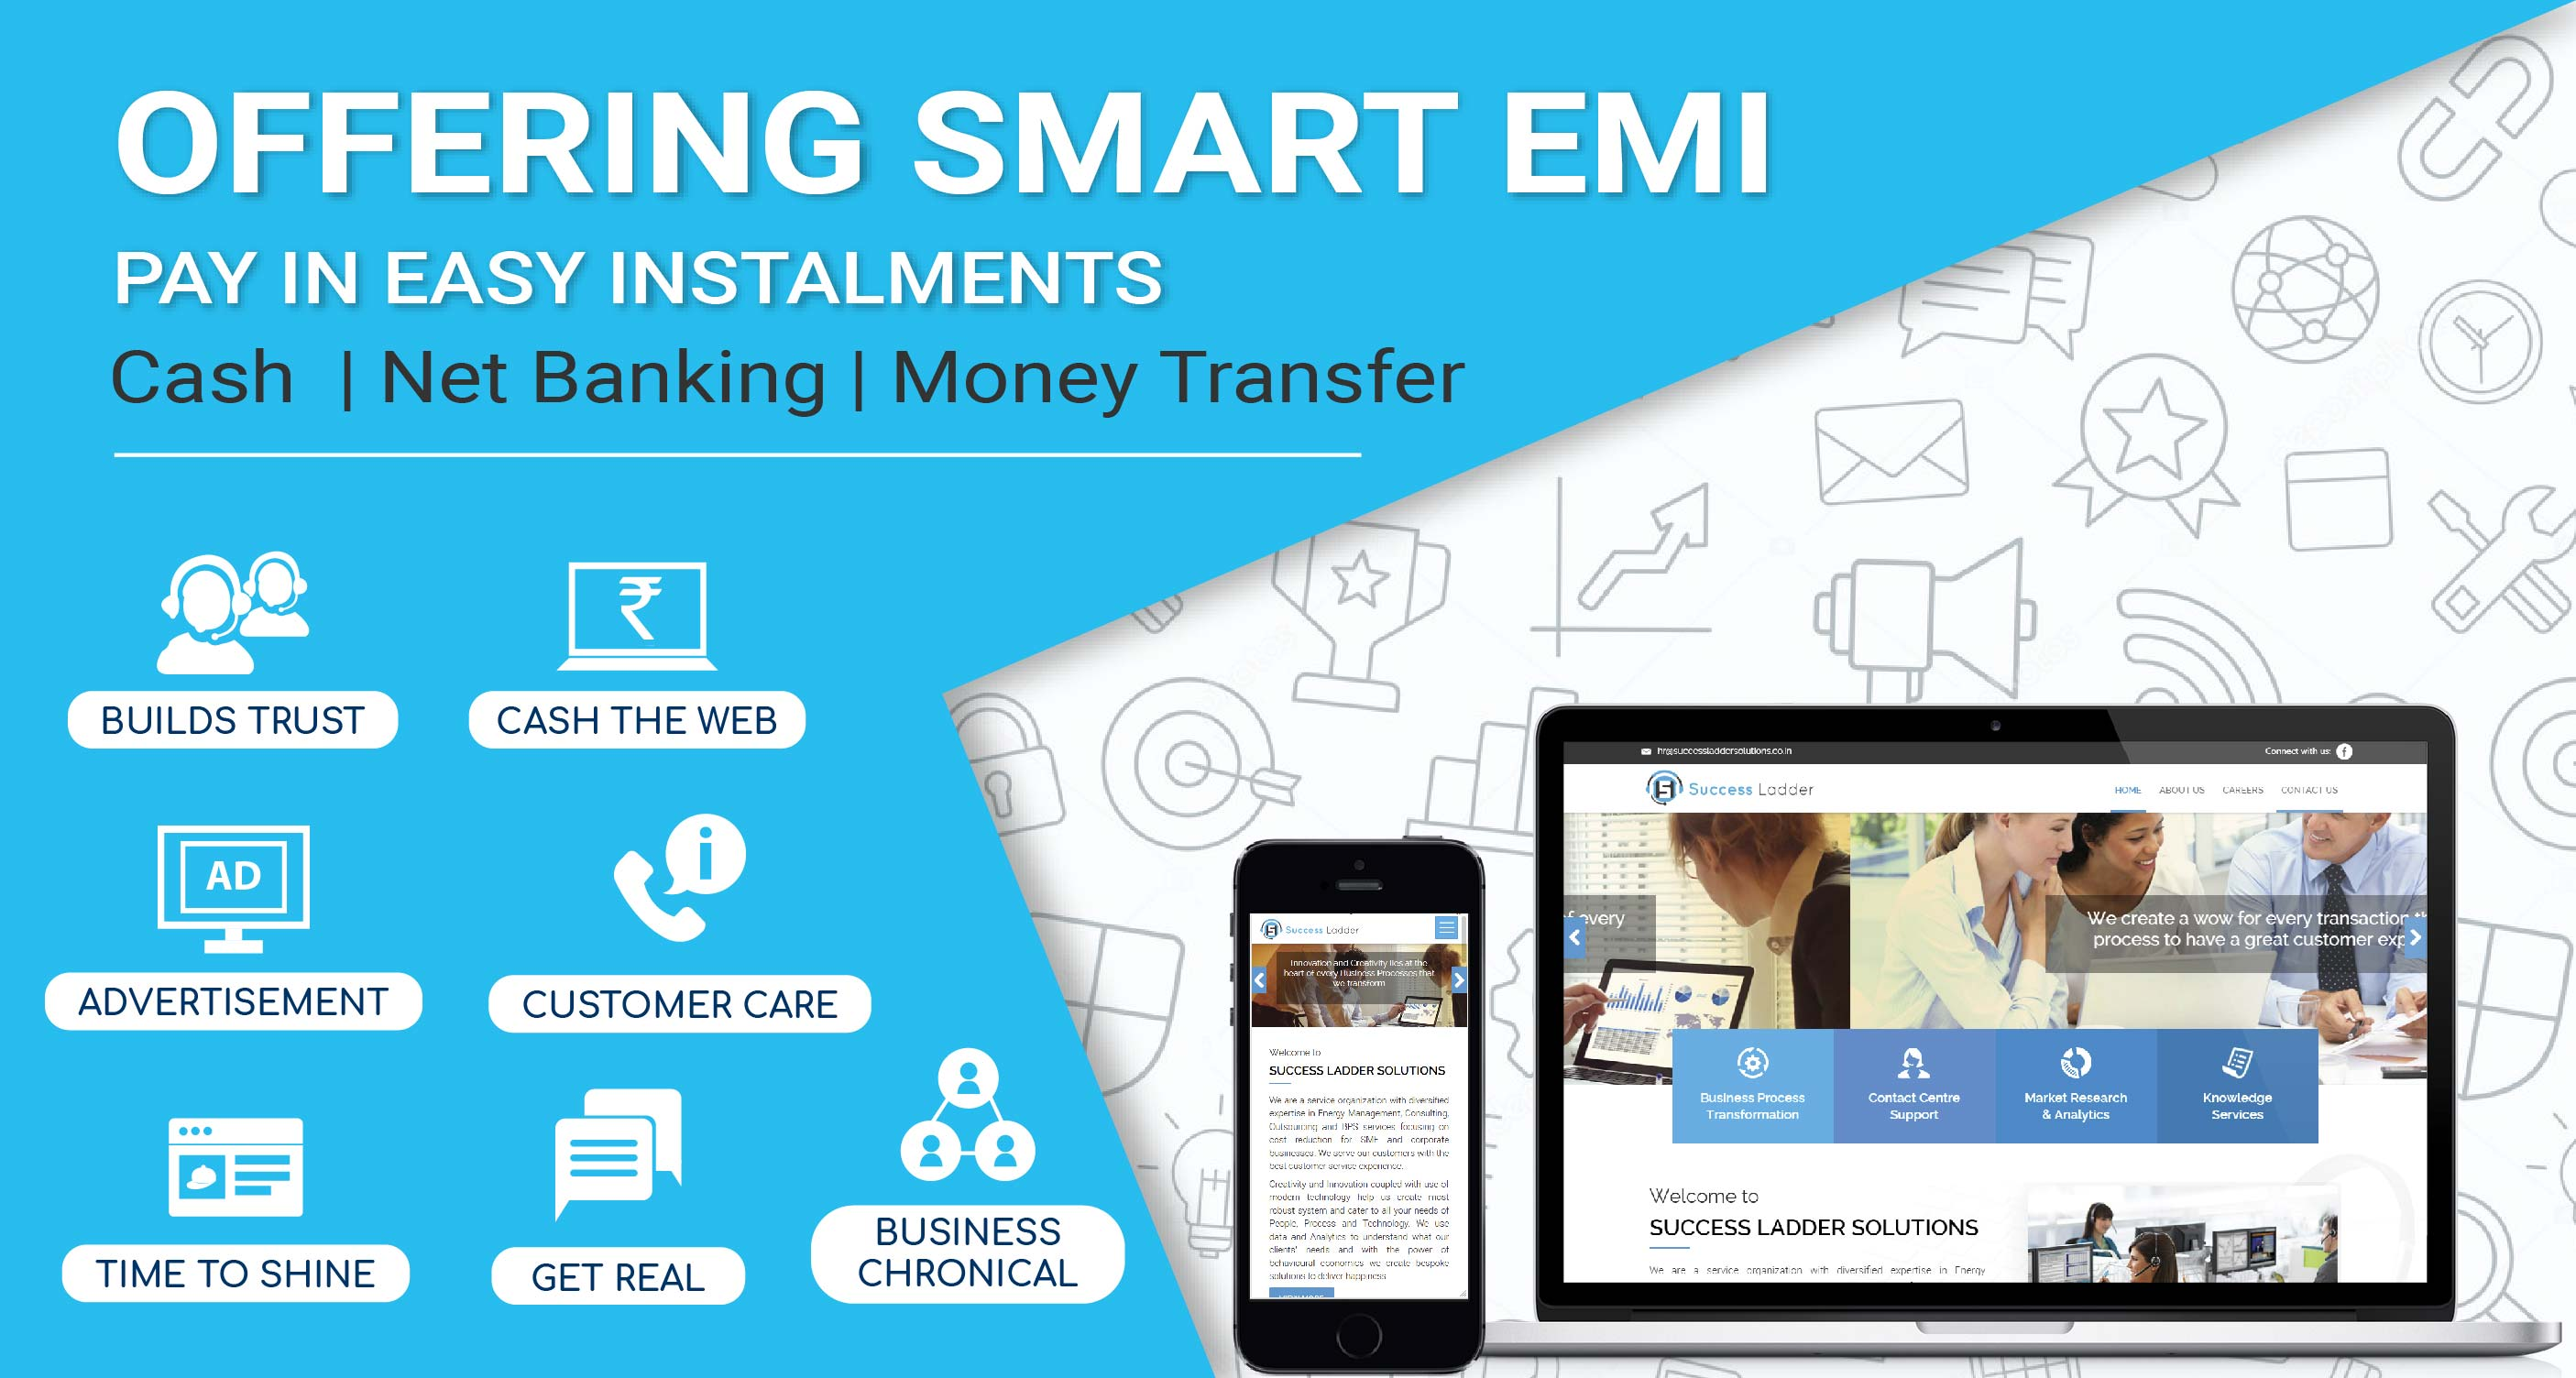 PAY SMALL ON BIG SPENDS WITH OUR CONVENIENT EMI OPTIONS